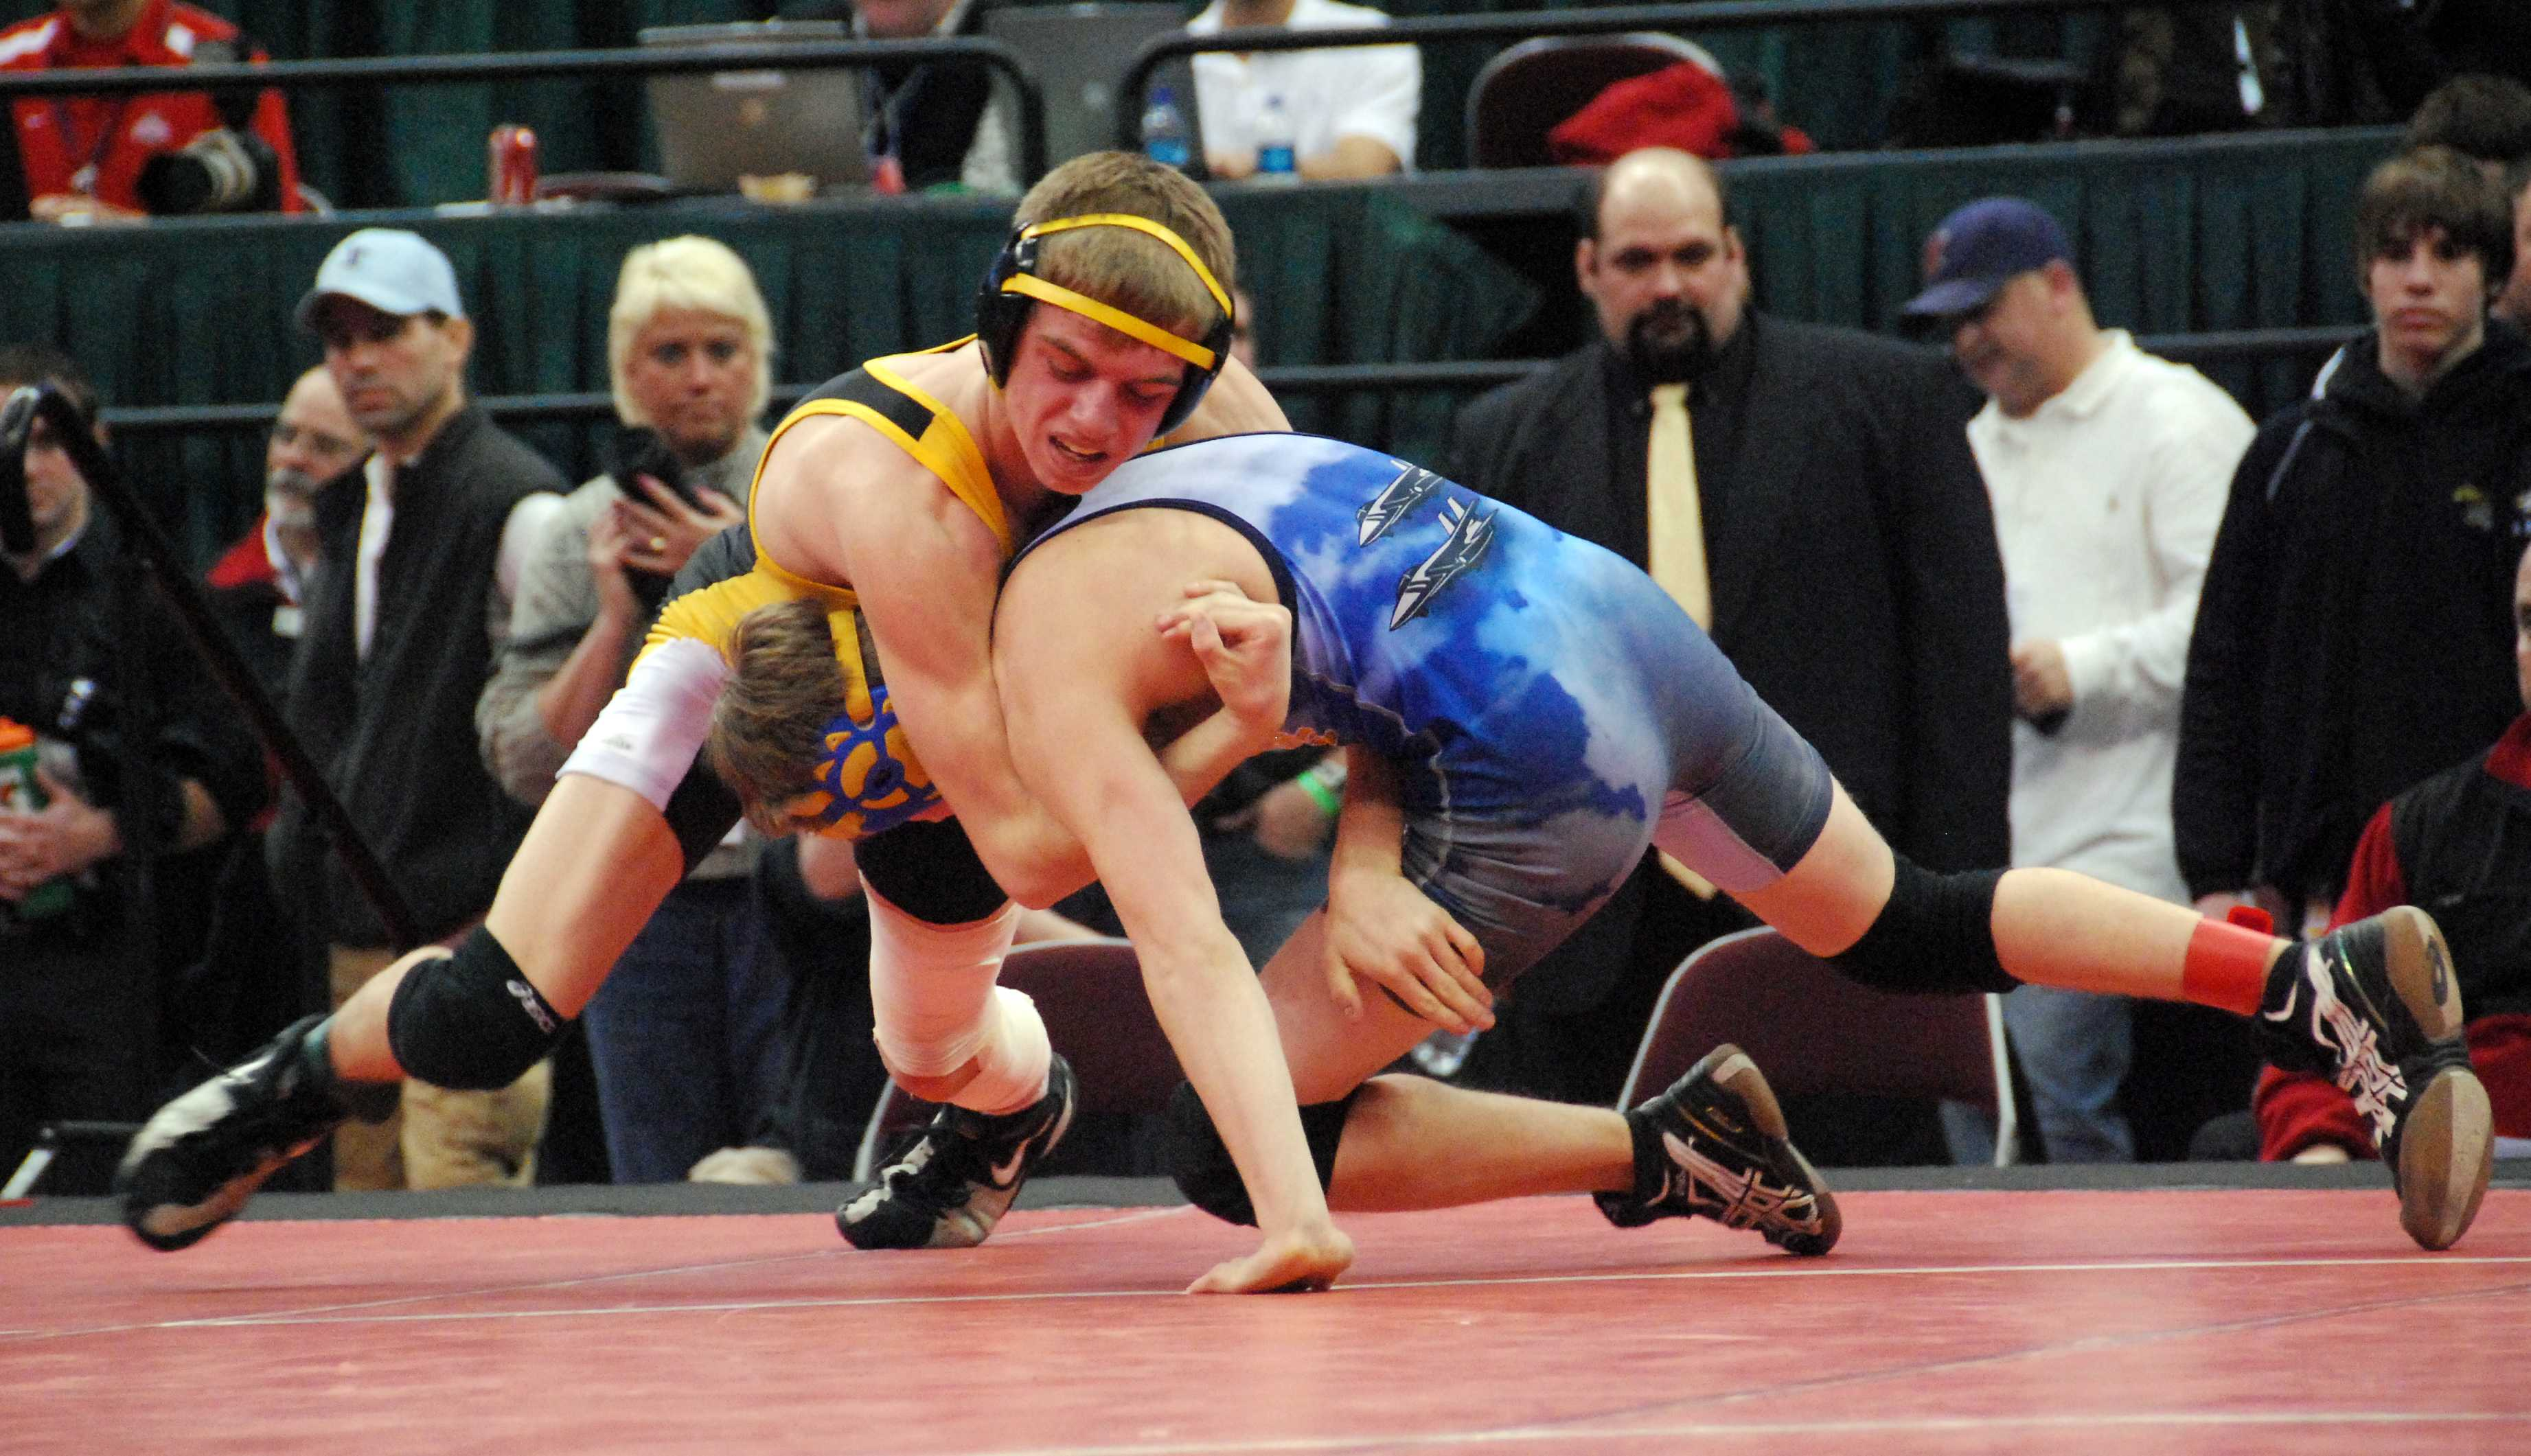 Alex Dronzek takes control of his opponent in the finals match.  Photo by Marc Eisenberg.